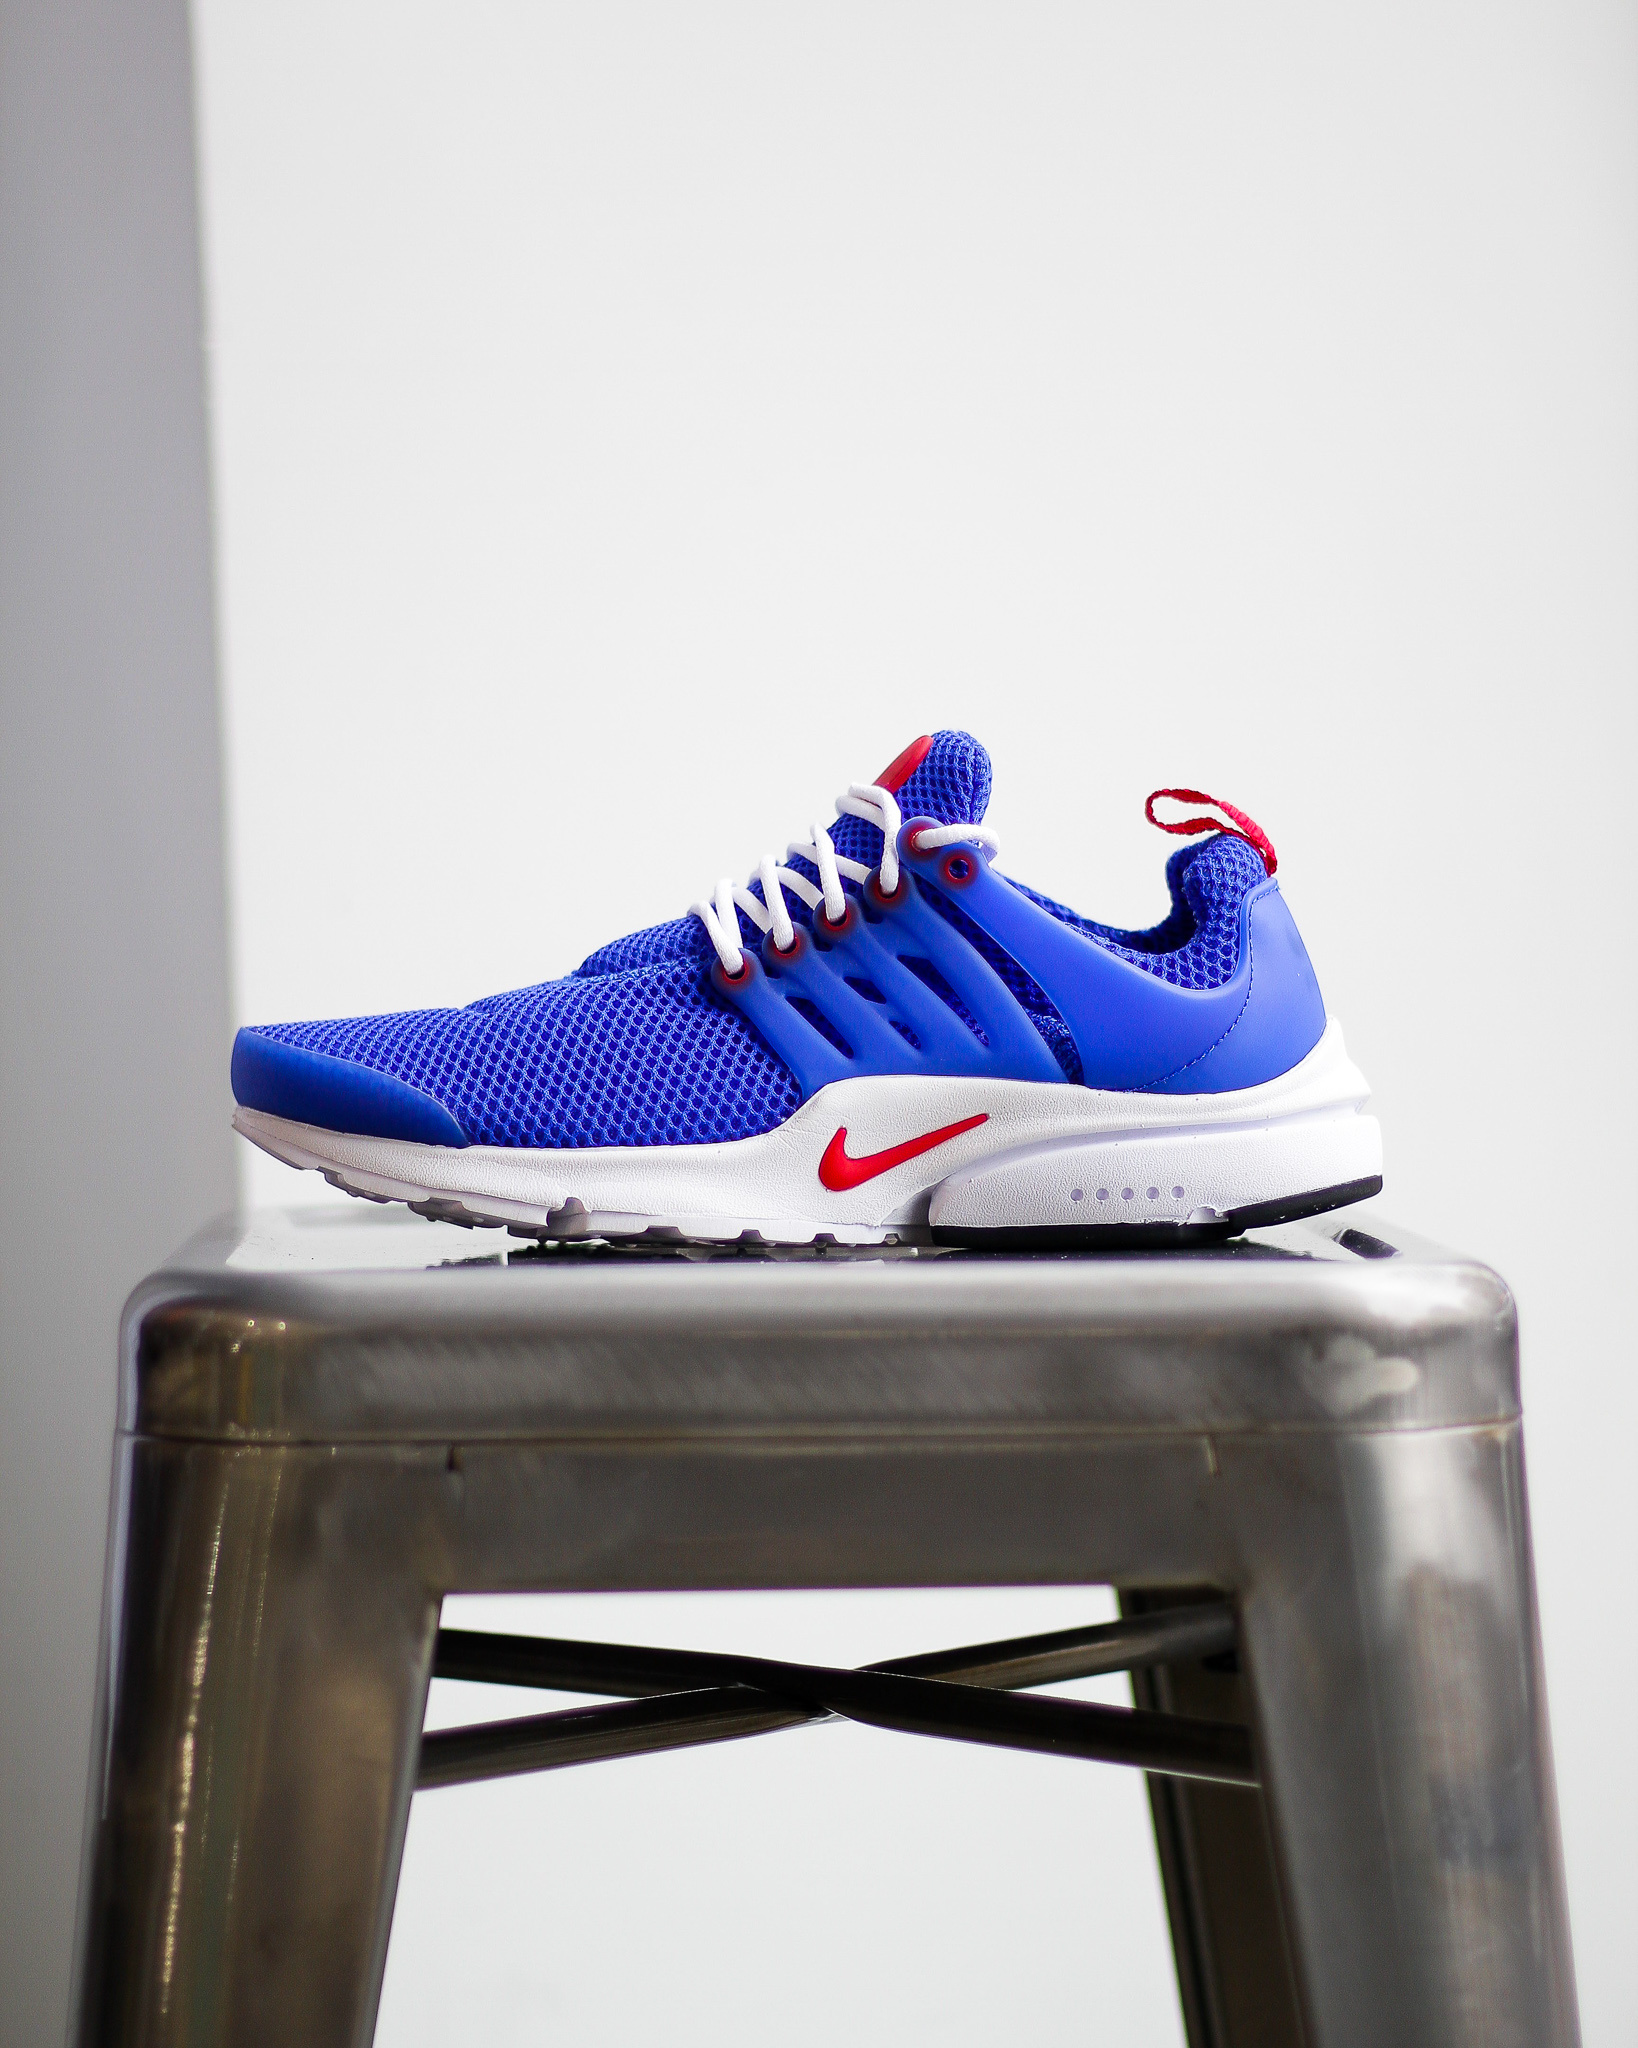 new concept 3993b db409 AIR PRESTO ESSENTIAL - BLUE - Sneaker Room - Jersey City